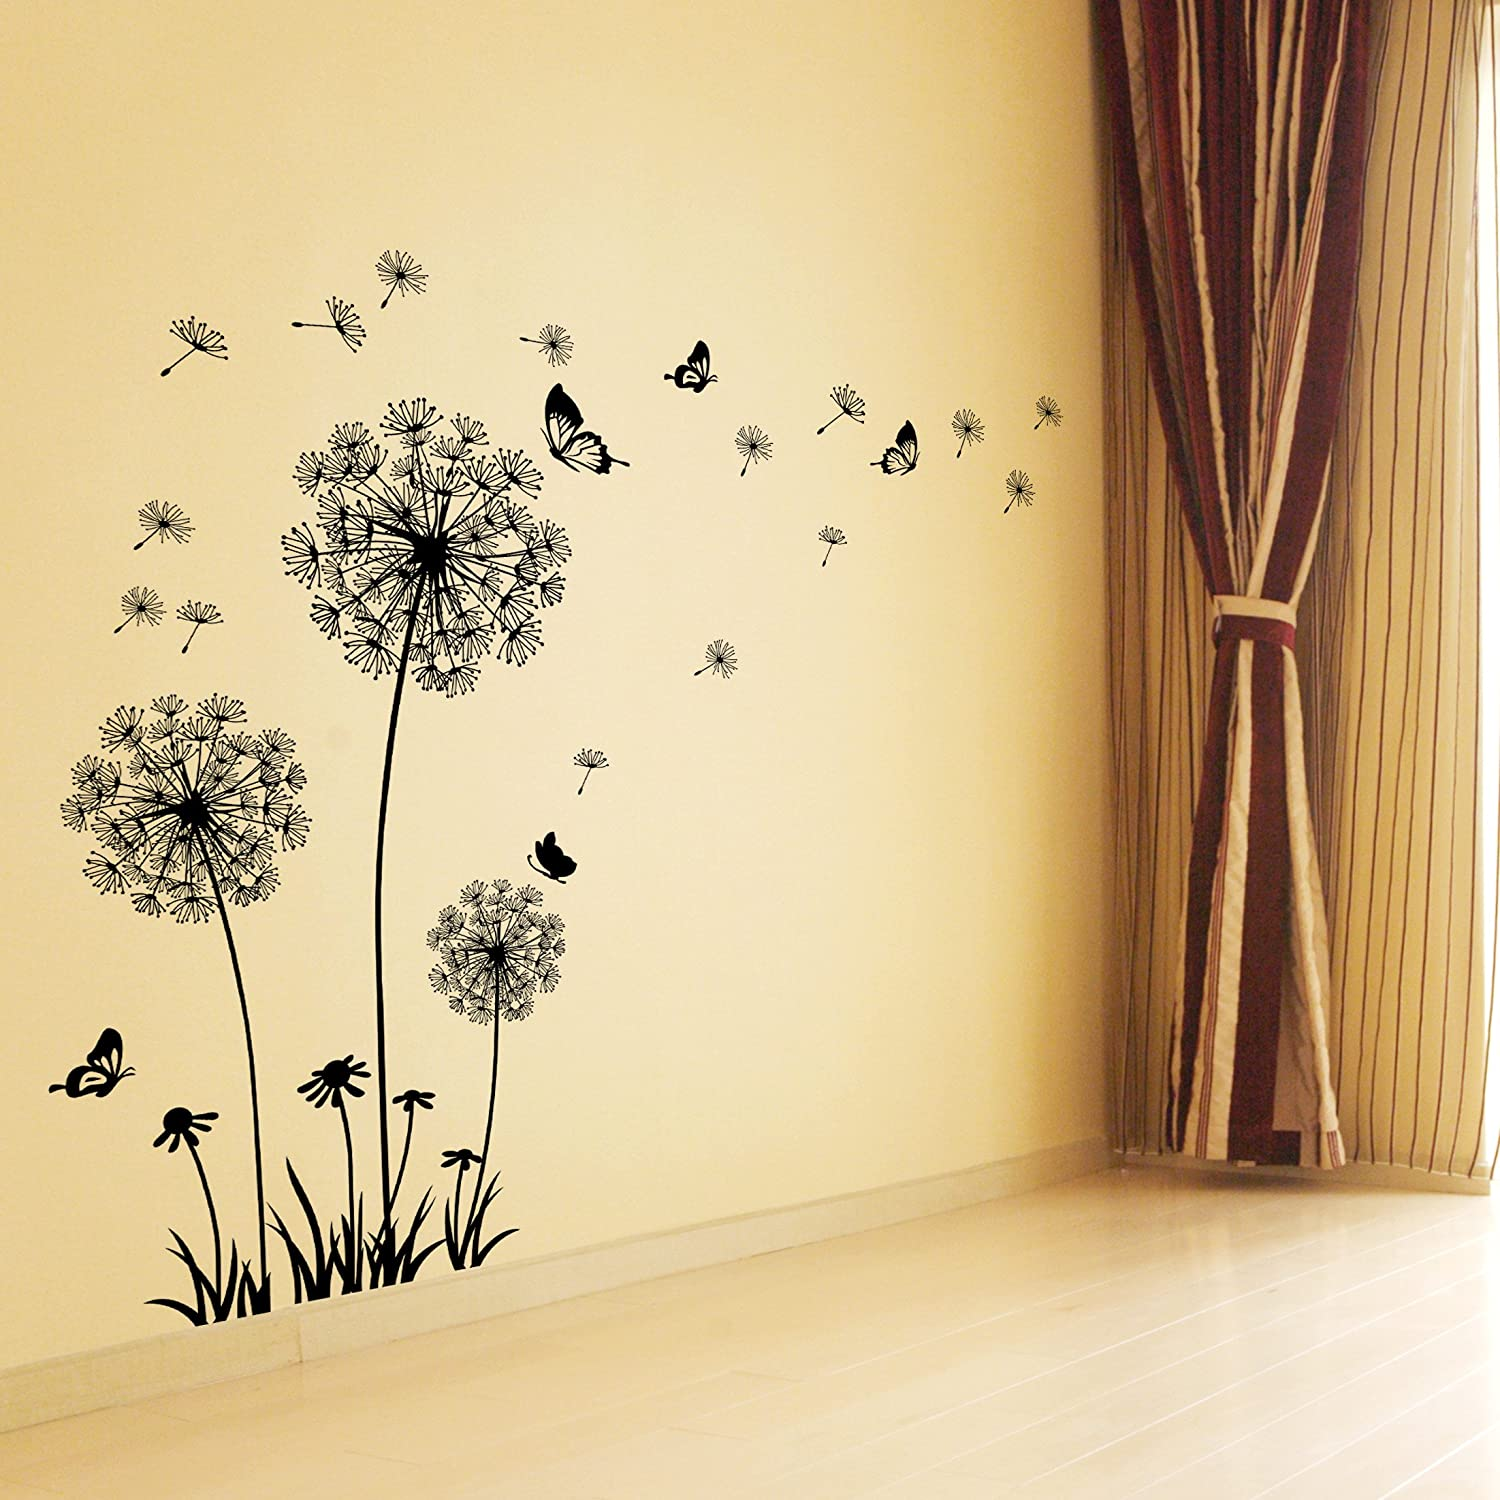 Amazon.com: Dandelion Wall Decal - Wall Stickers Dandelion Art Decor ...